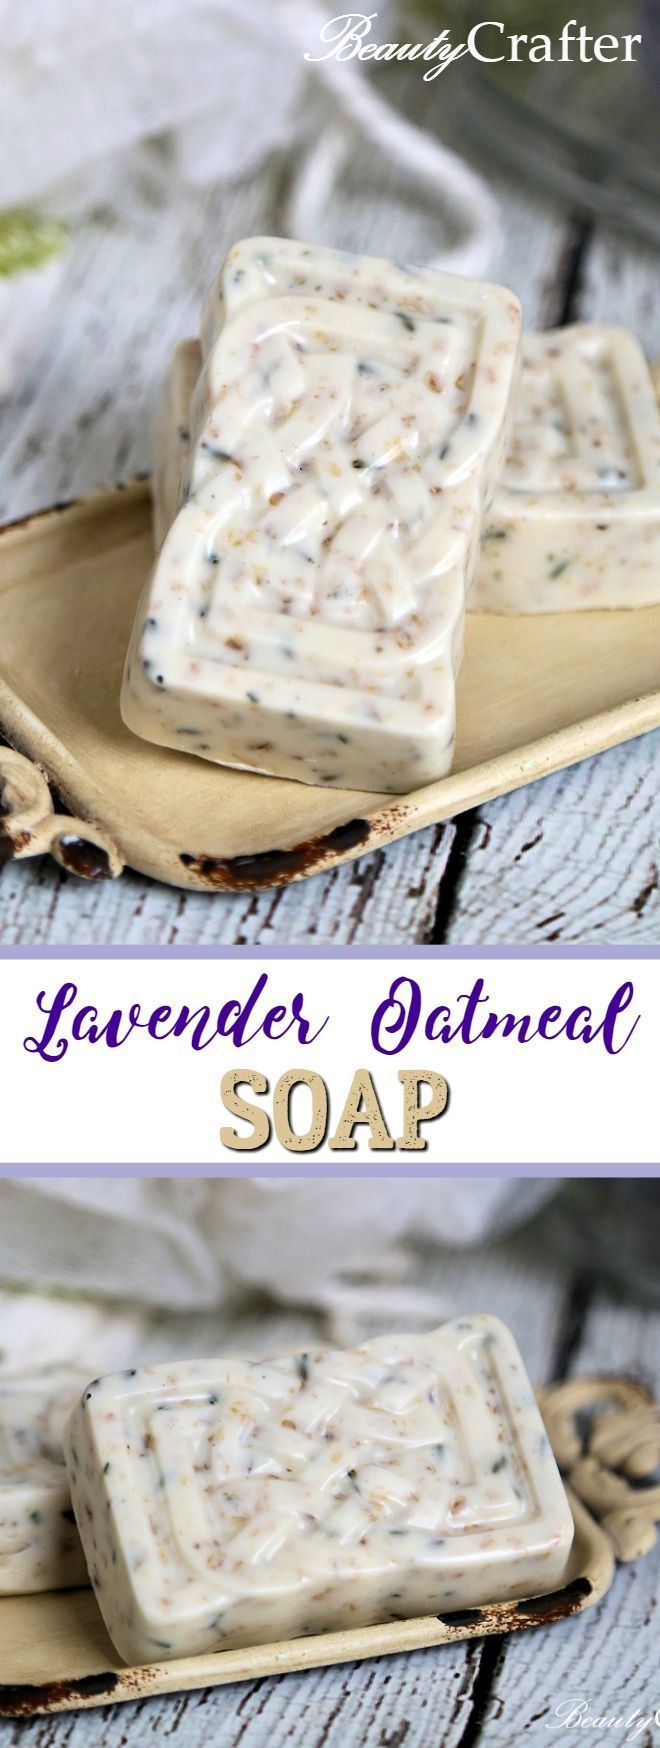 Lavender Oatmeal Soap Recipe